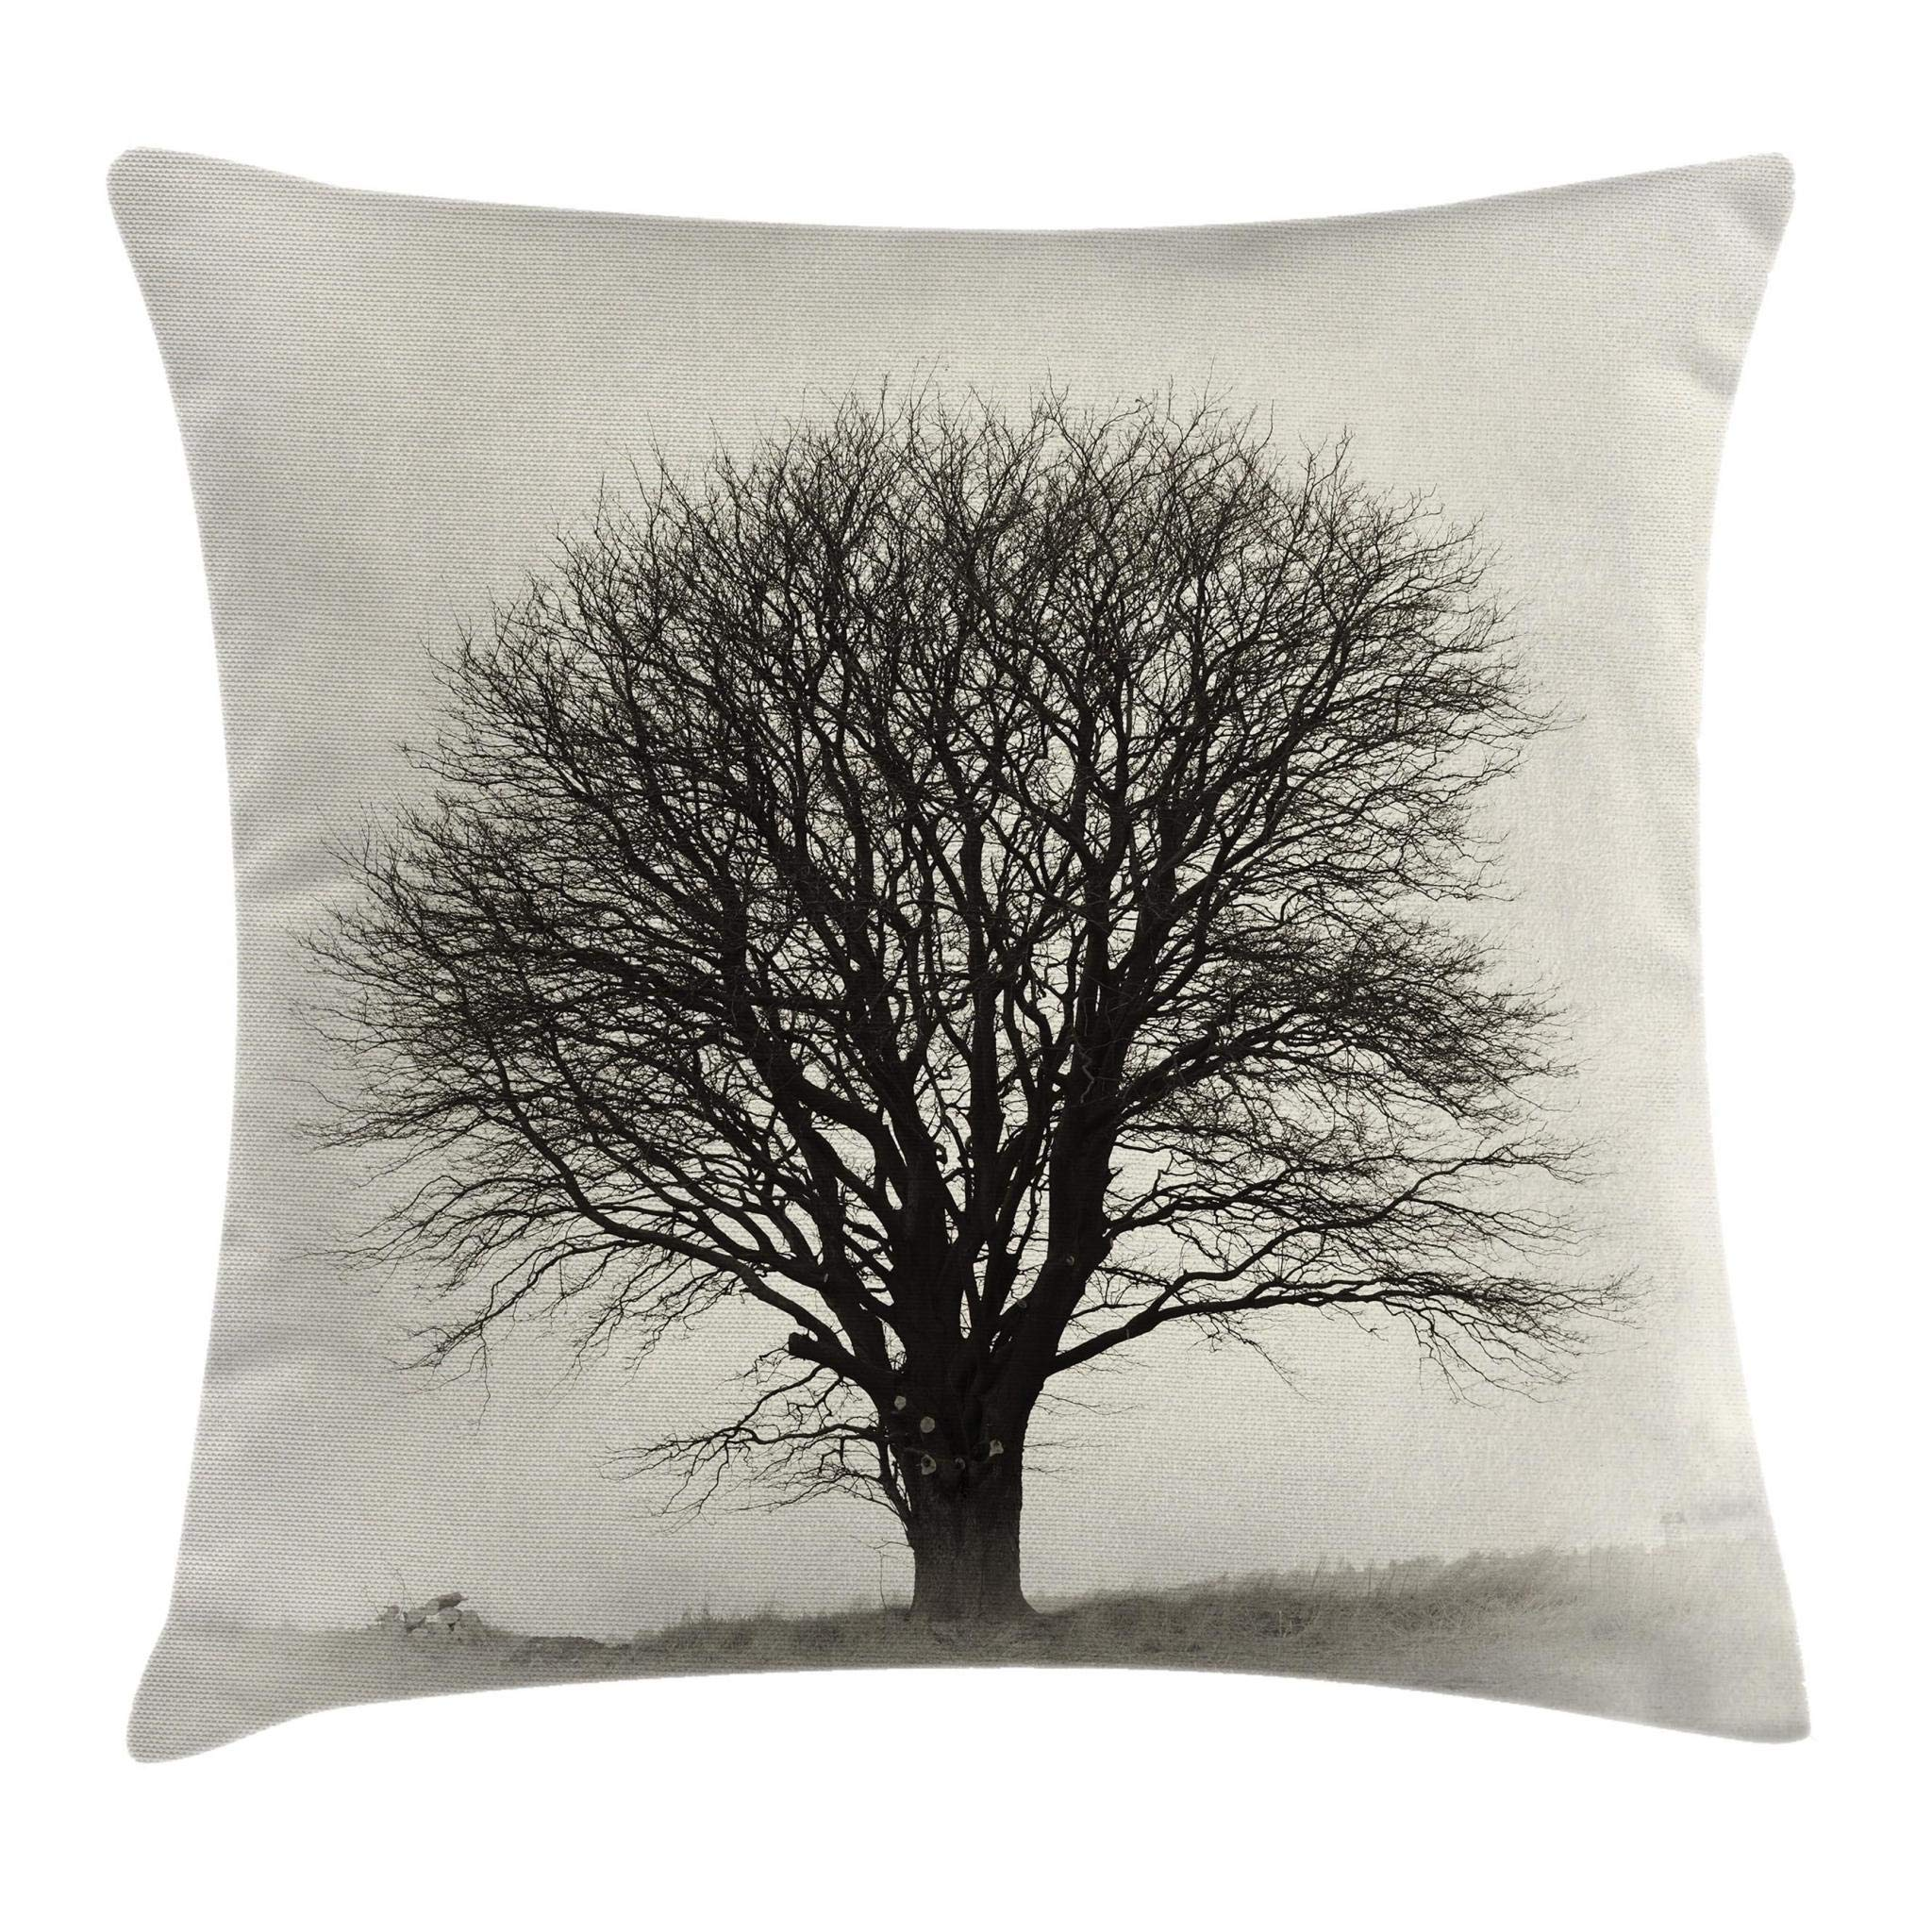 Ambesonne Grey Throw Pillow Cushion Cover, Photo of a Big Tree on a Field Branches Fall Season Monochromic Landscape Artwork, Decorative Square Accent Pillow Case, 24'' X 24'', Beige Black by Ambesonne